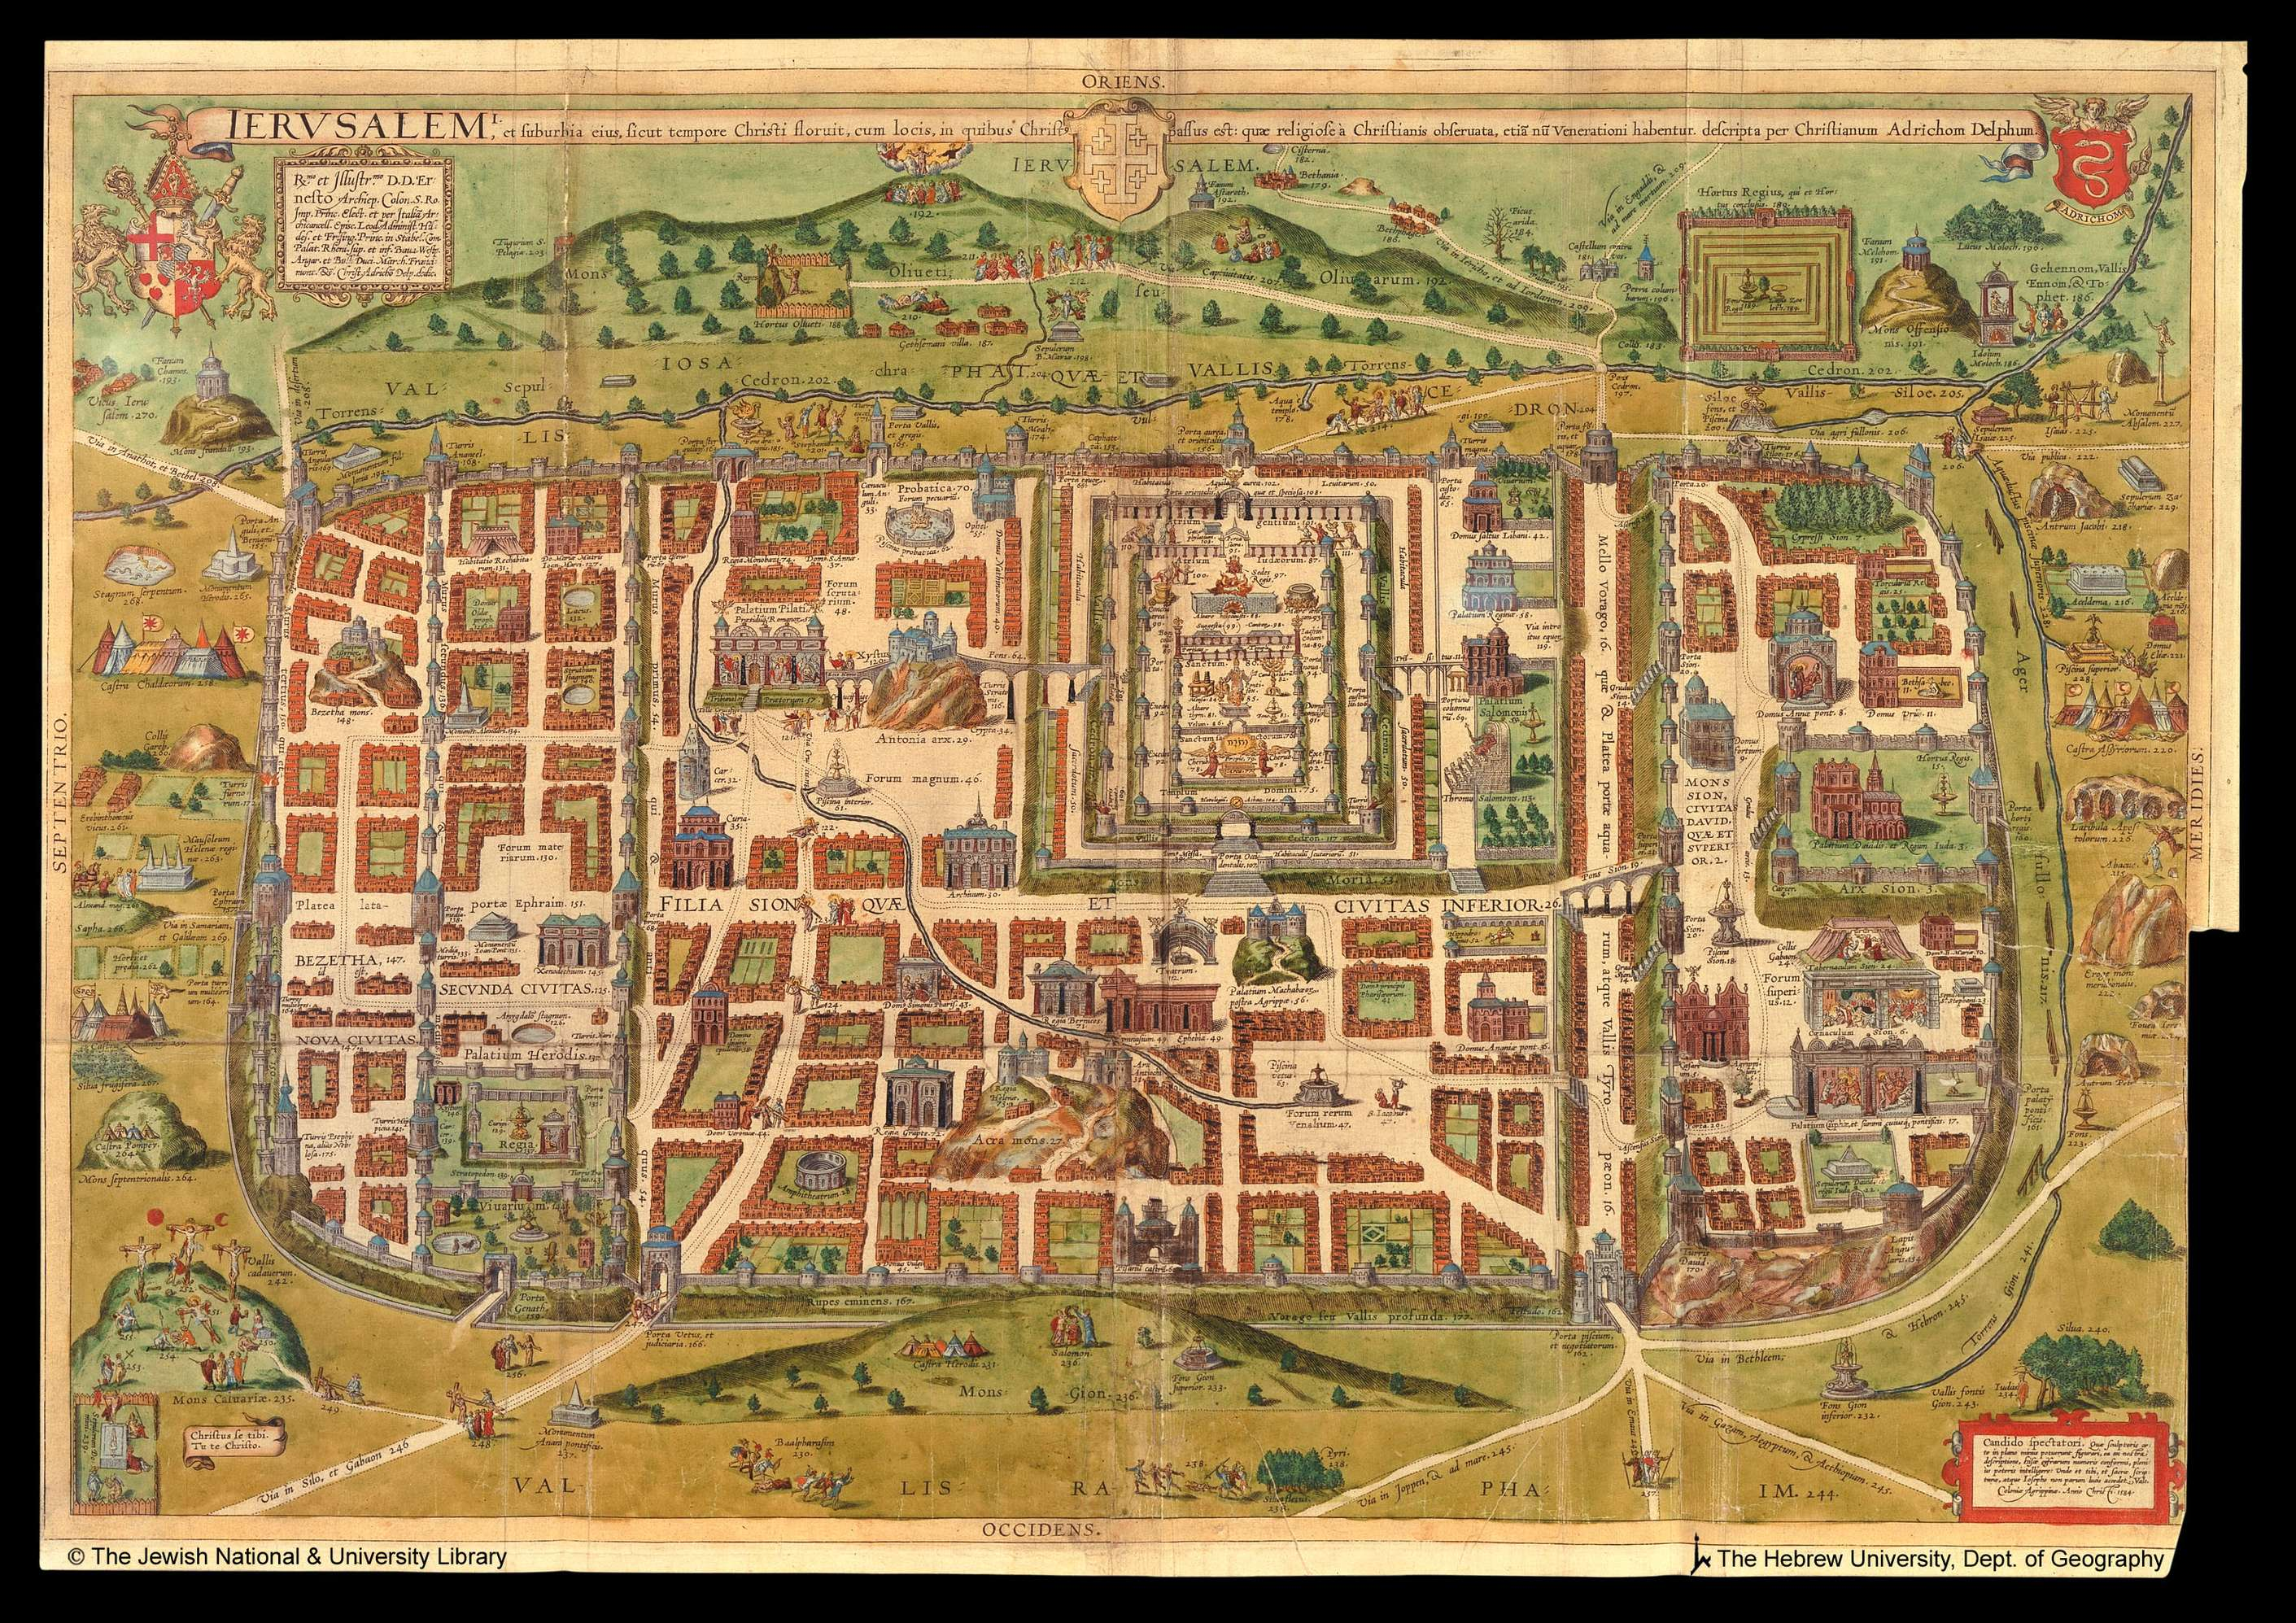 File:Jerusalem map van-Adrichem 1584.jpg